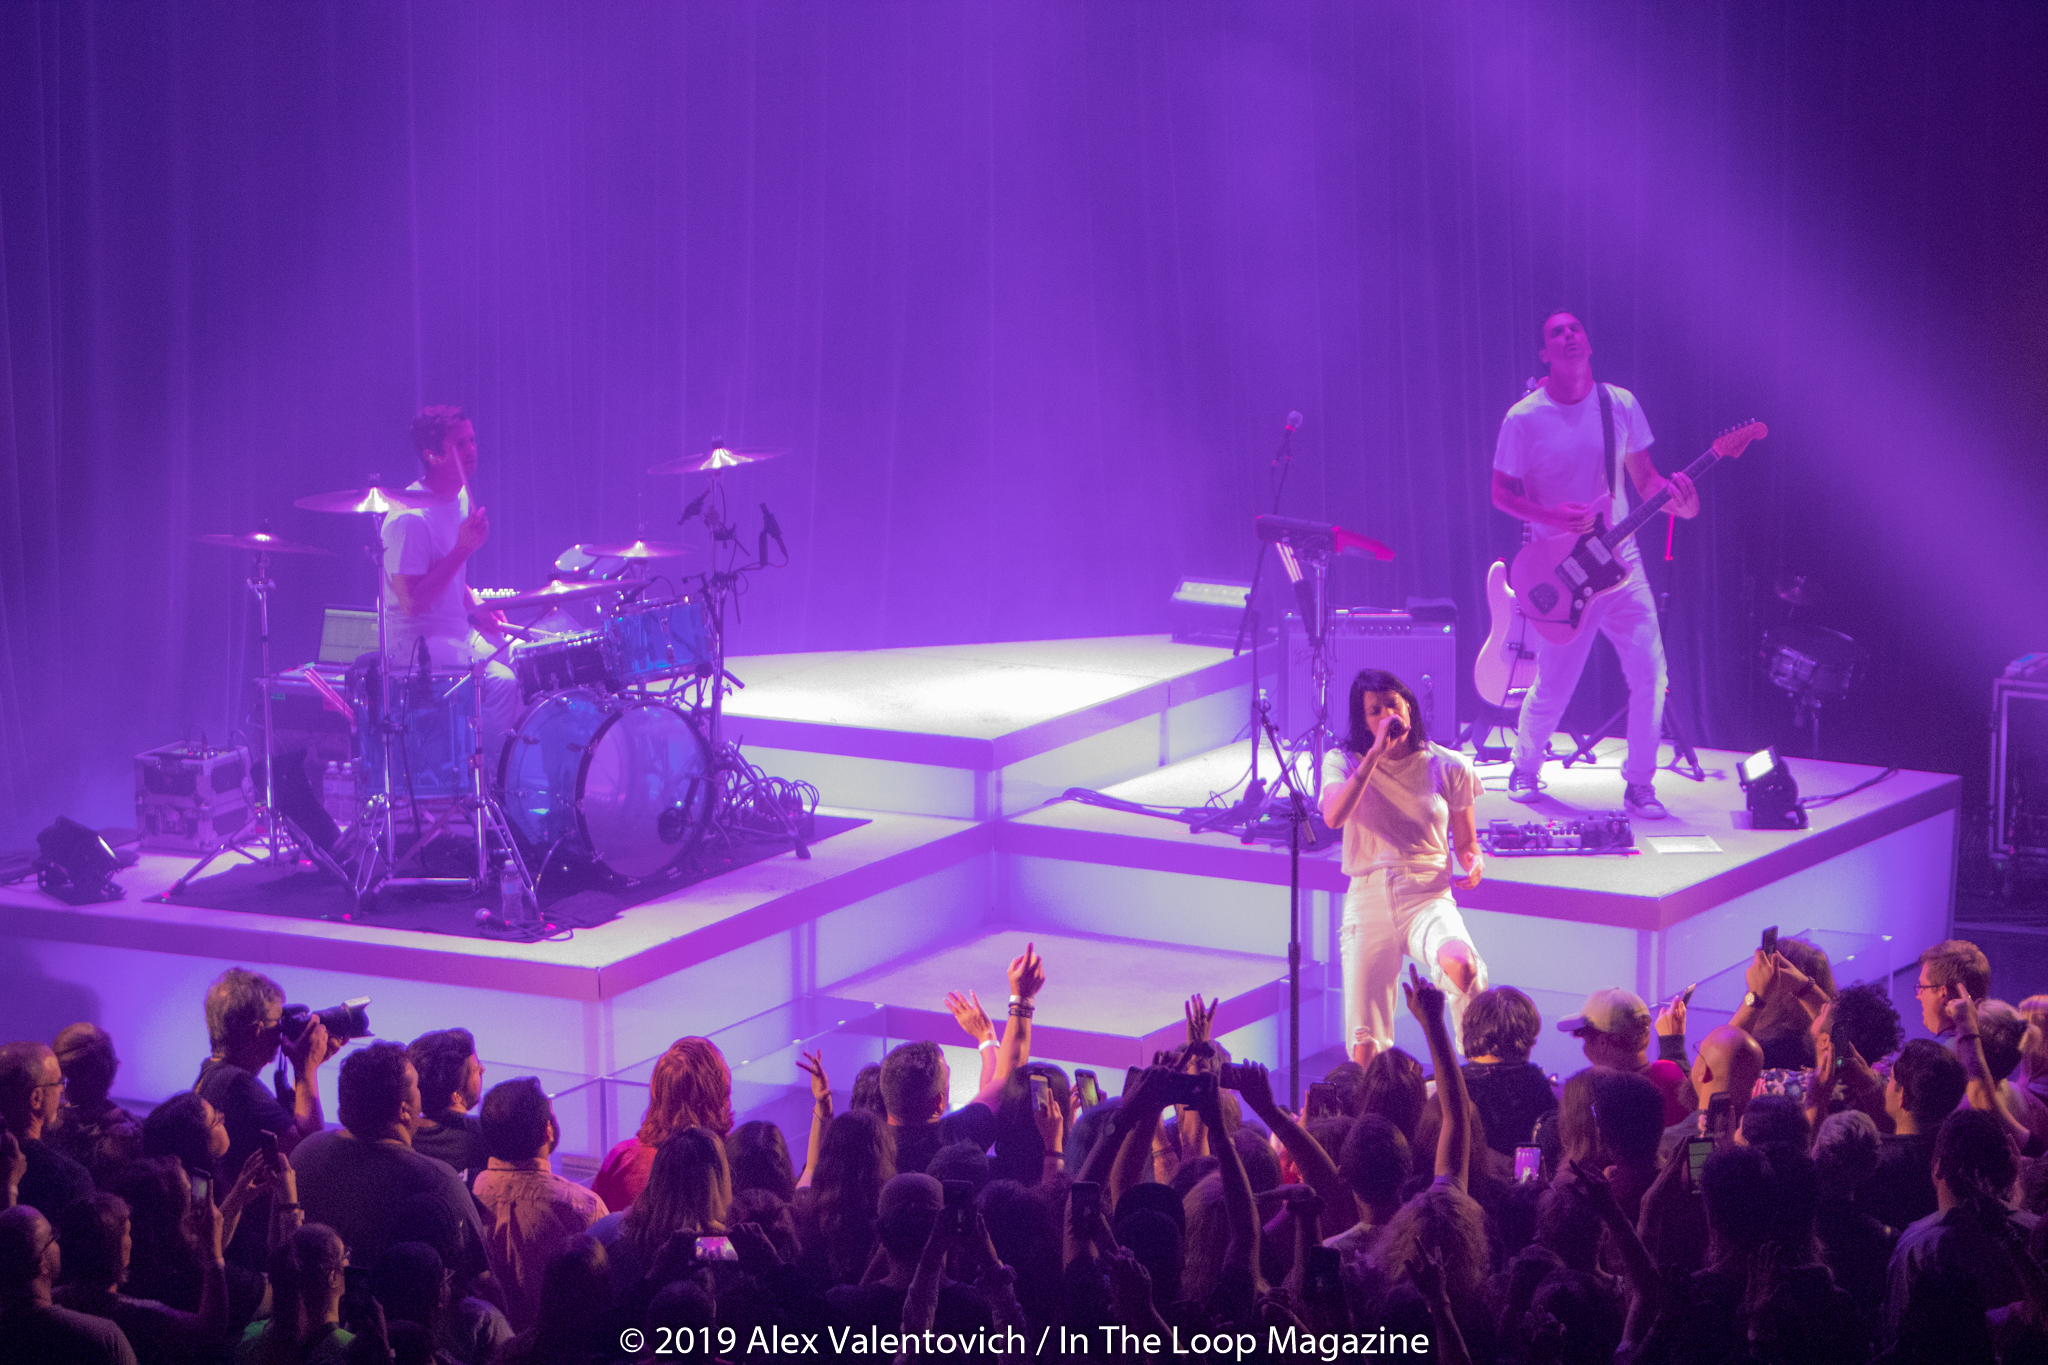 A Night Of Indie Pop At The Riviera Theatre With K Flay, Houses and Your Smith